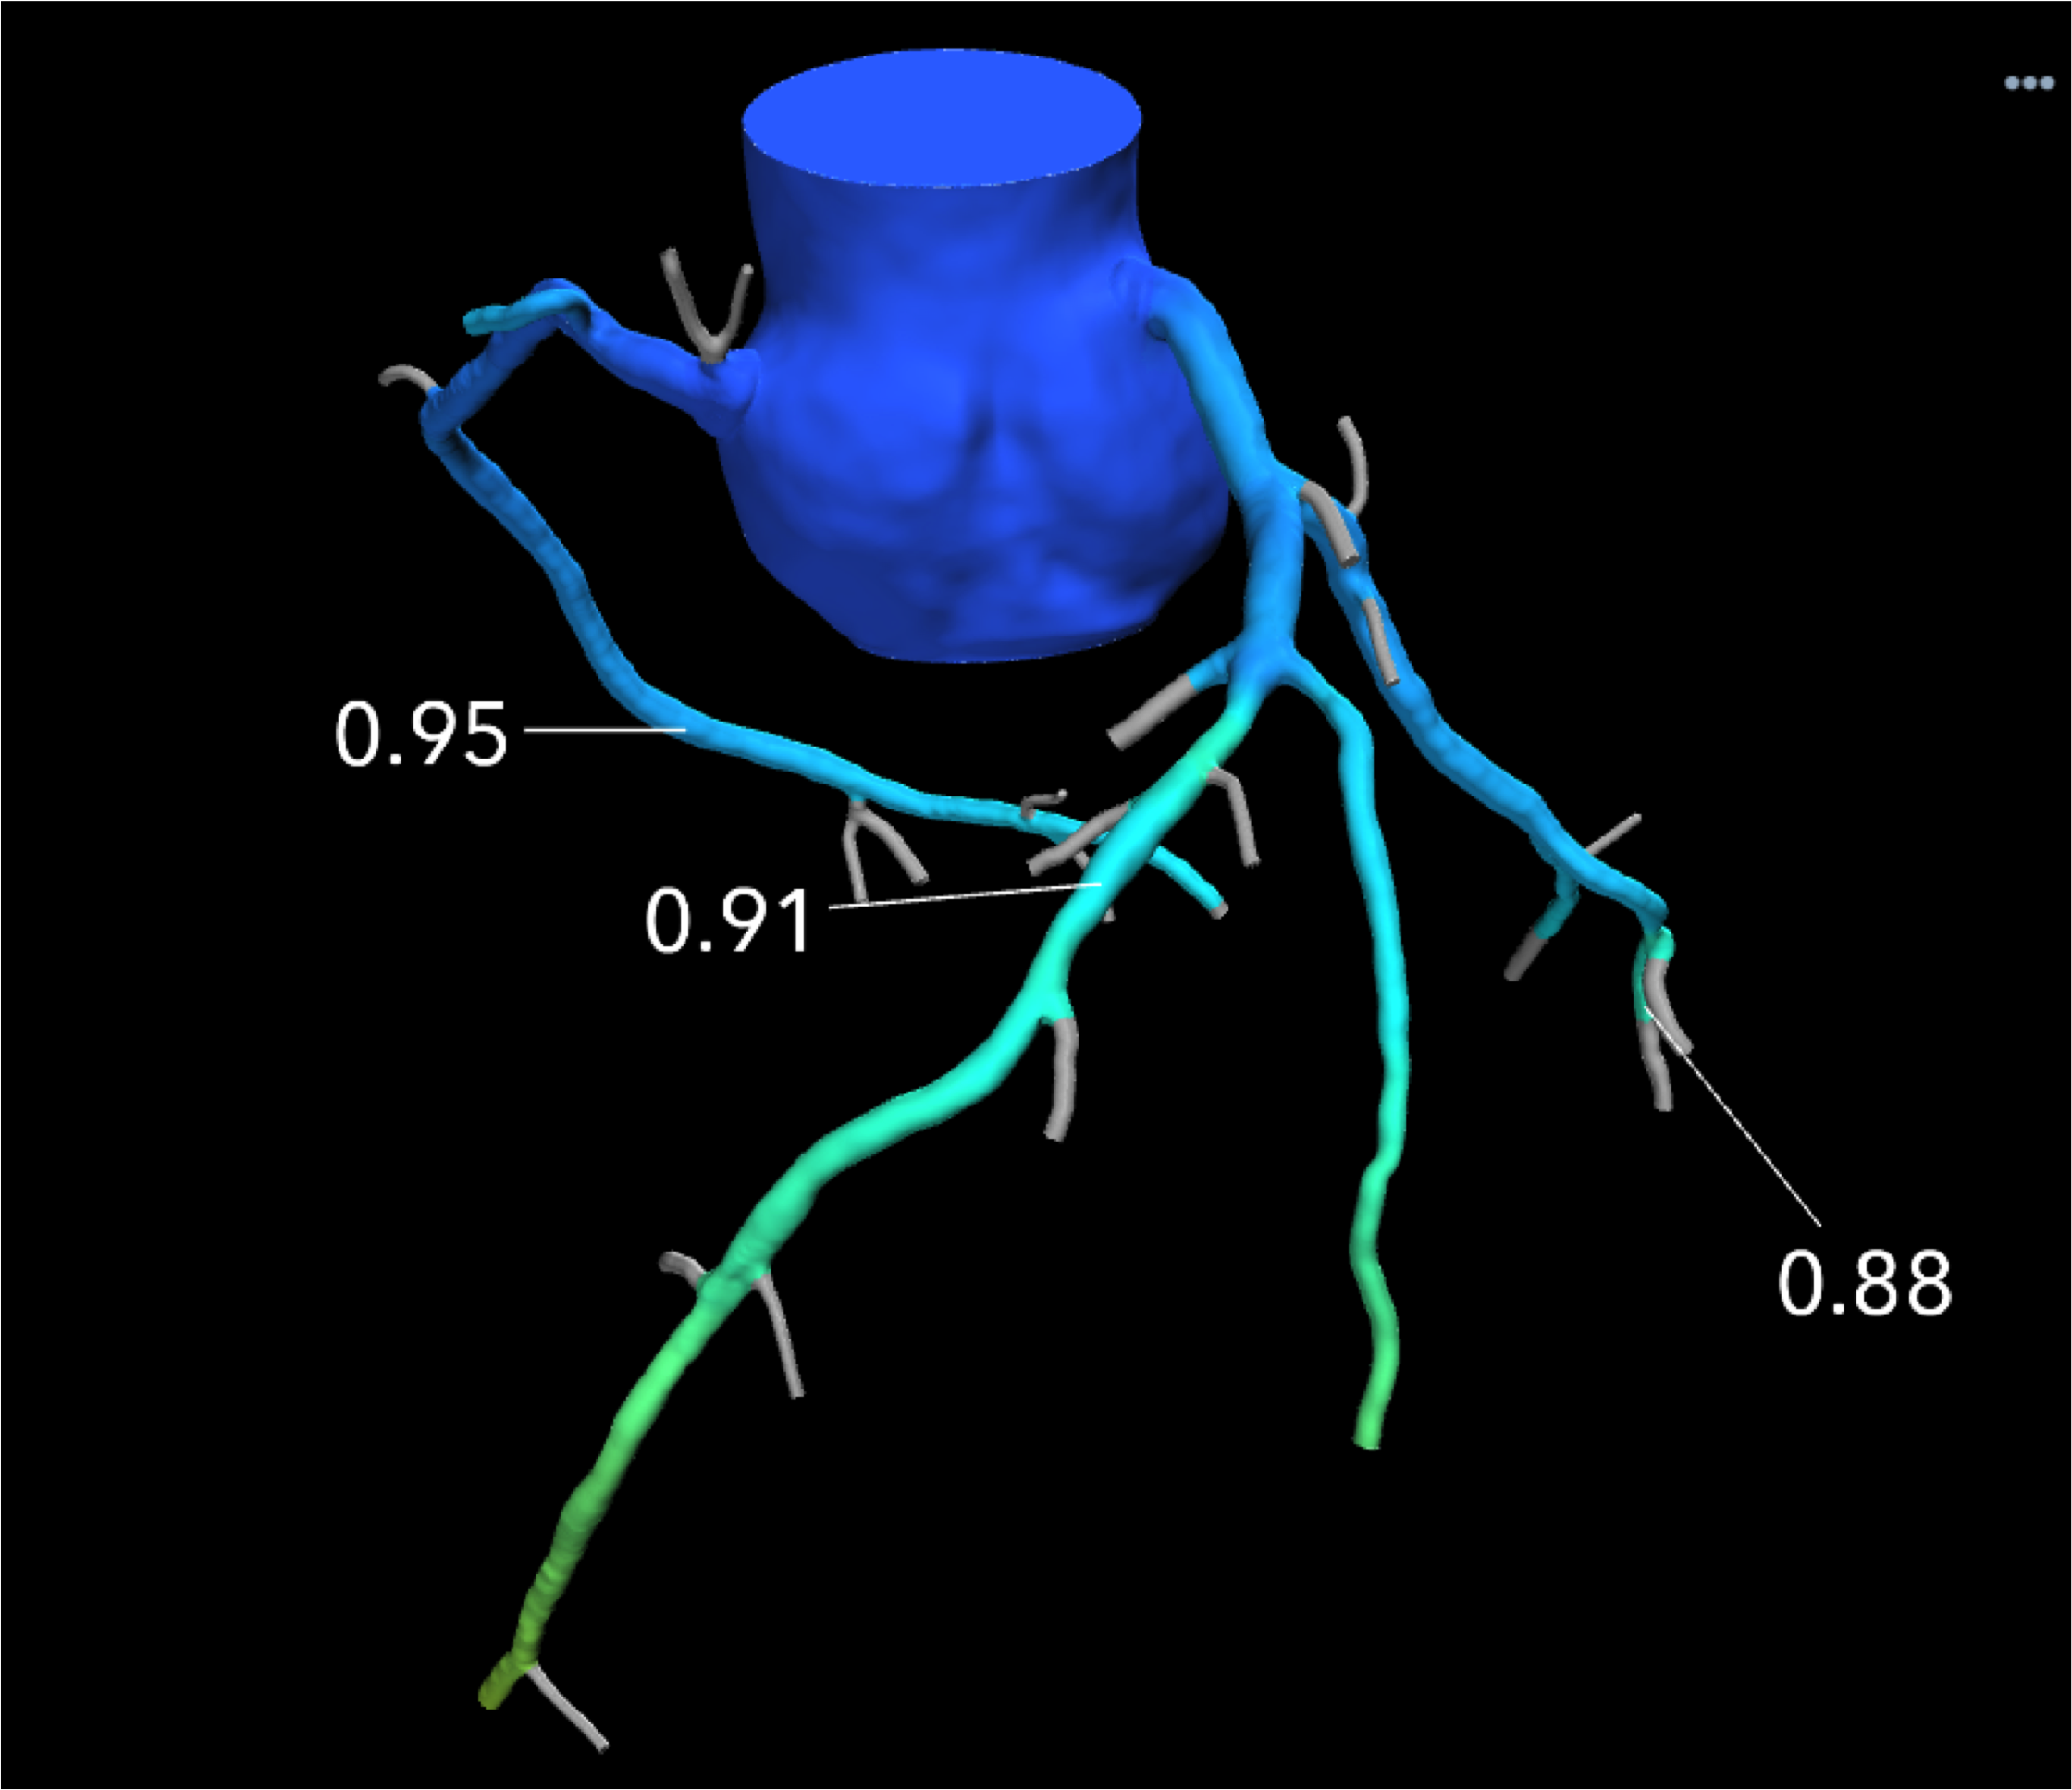 An example of a HeartFlow FFR-CT image showing the bloodflow through what looked like a significant blockage on CT angiography alone, actually was not flow-limiting based on computational fluid dynamics. Use of the technology was supposed to reduce the number of diagnostic catheterizations in the FORECAST trial, but the costs of FFR-CT were not offset enough to show cost savings.